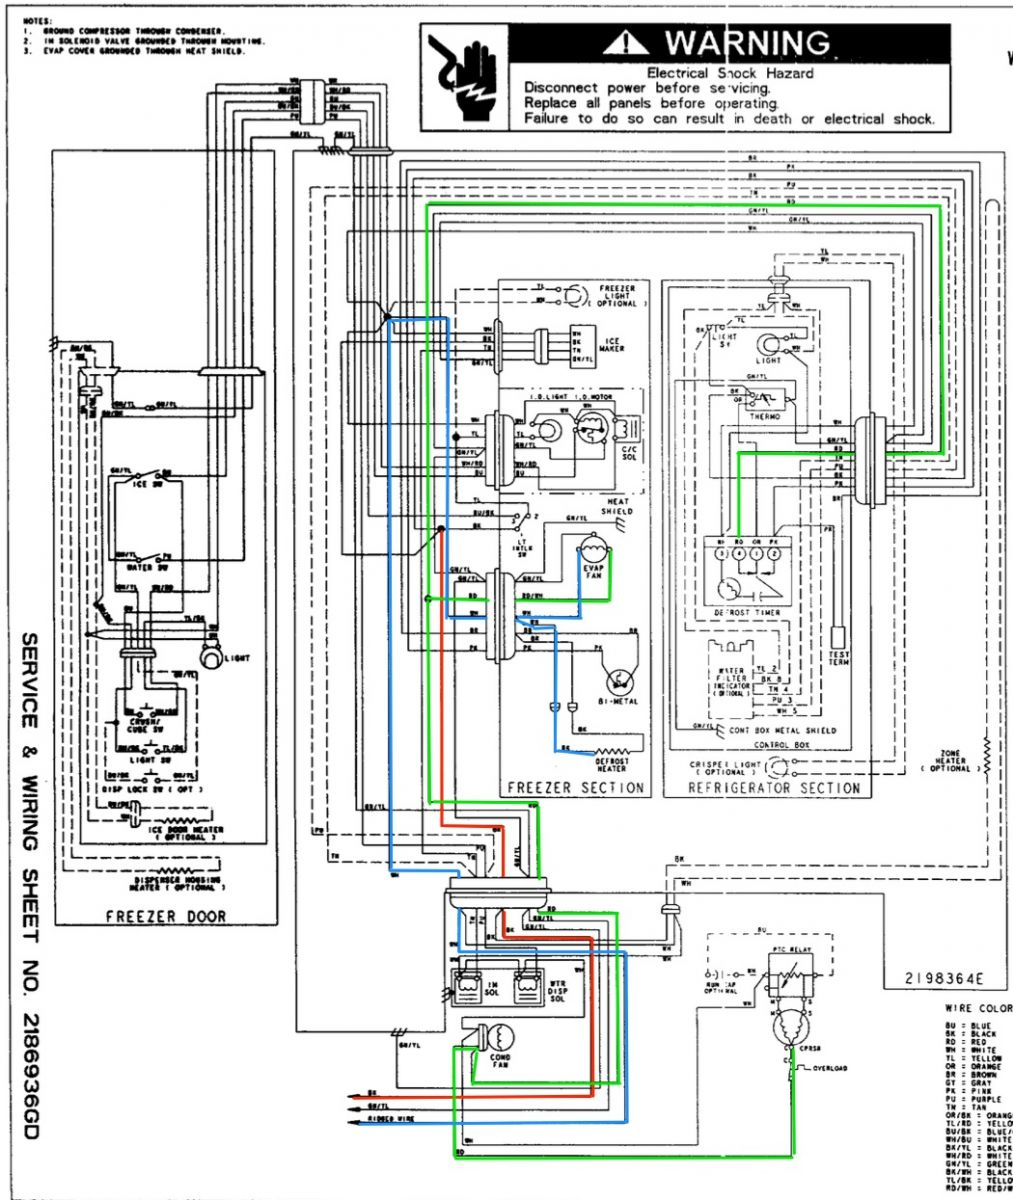 Whirlpool Refrigerator Schematic Diagram Guide And Troubleshooting Old Ge Wiring Ed25rfxfw01 The Rh Appliantology Org Model